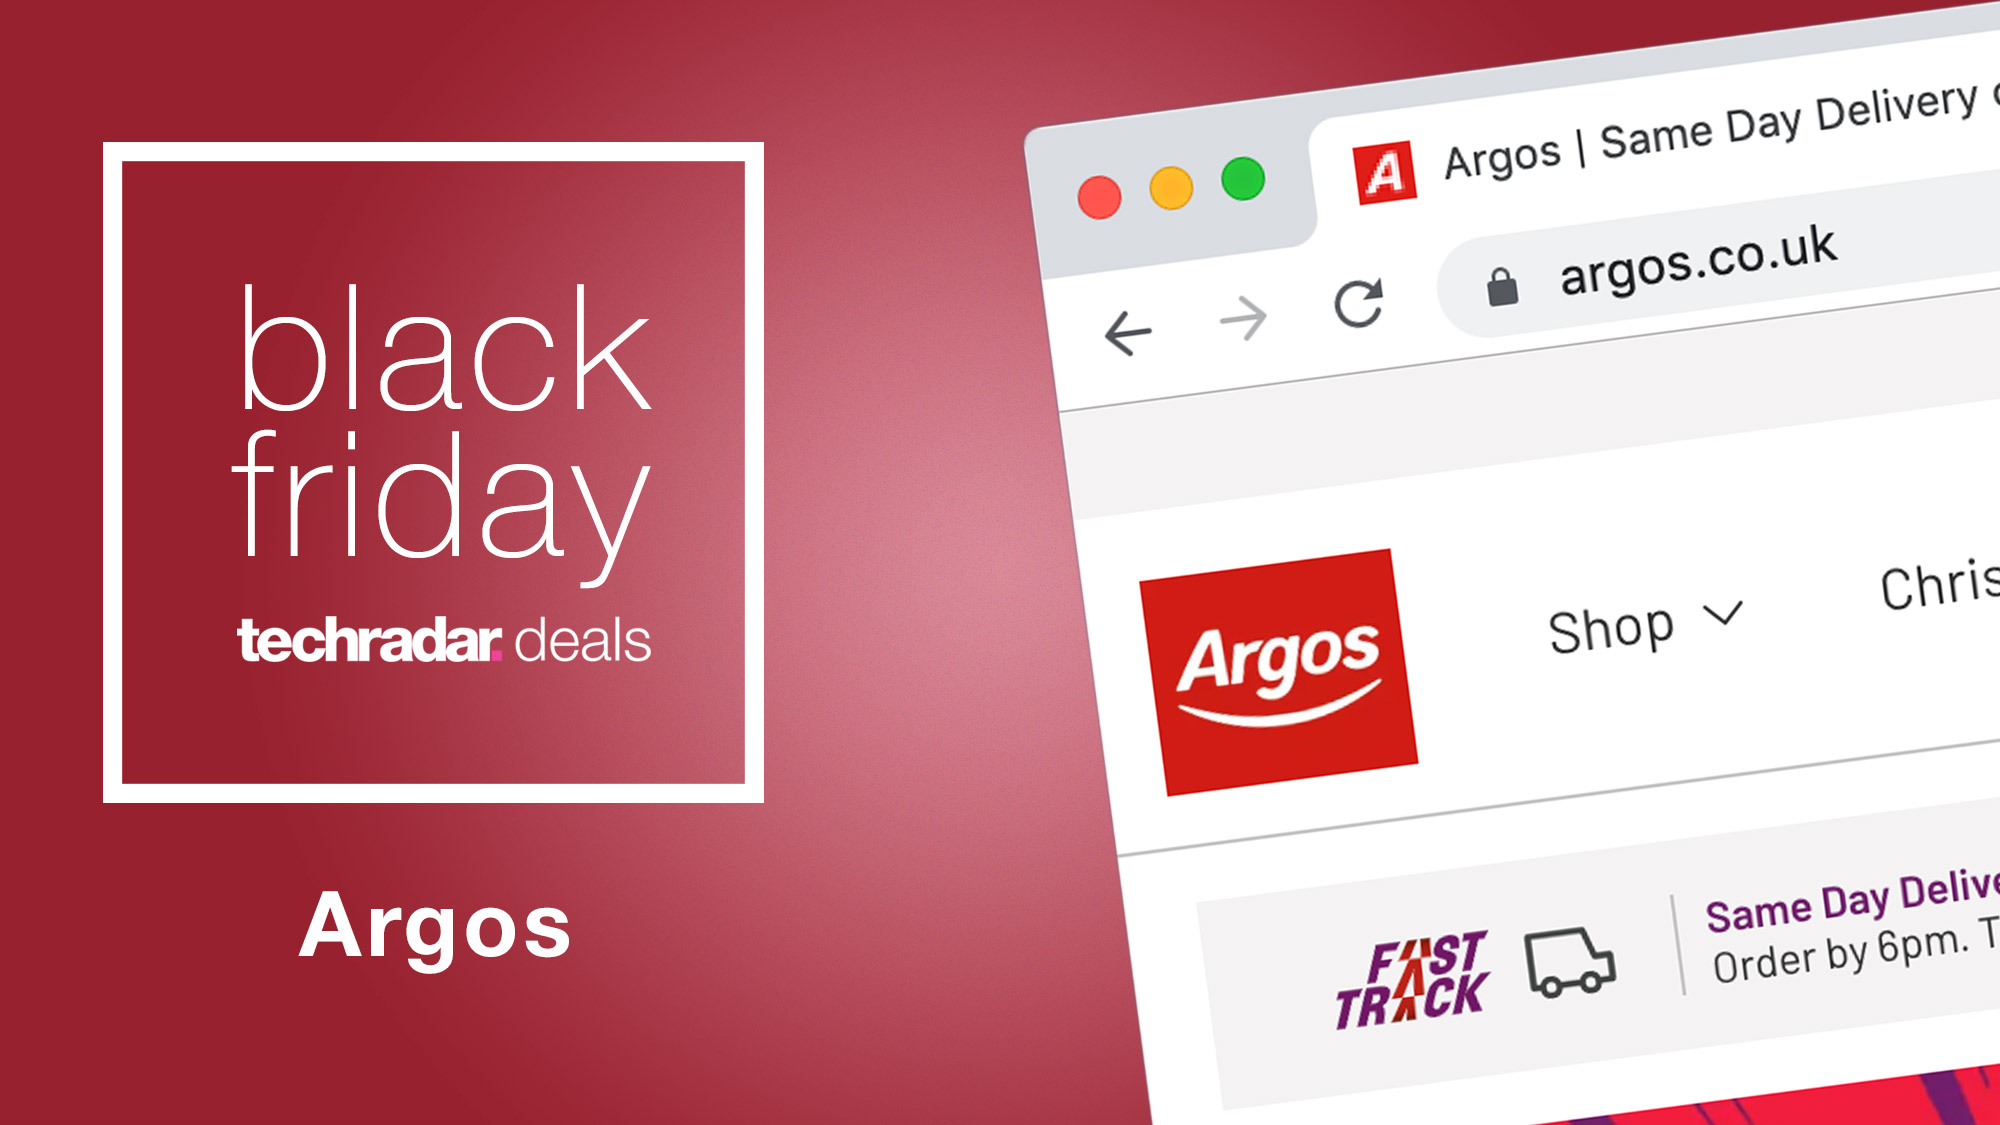 Argos Black Friday Deals 2020 Uk Offers On Tvs Smart Home Gaming And More Techradar